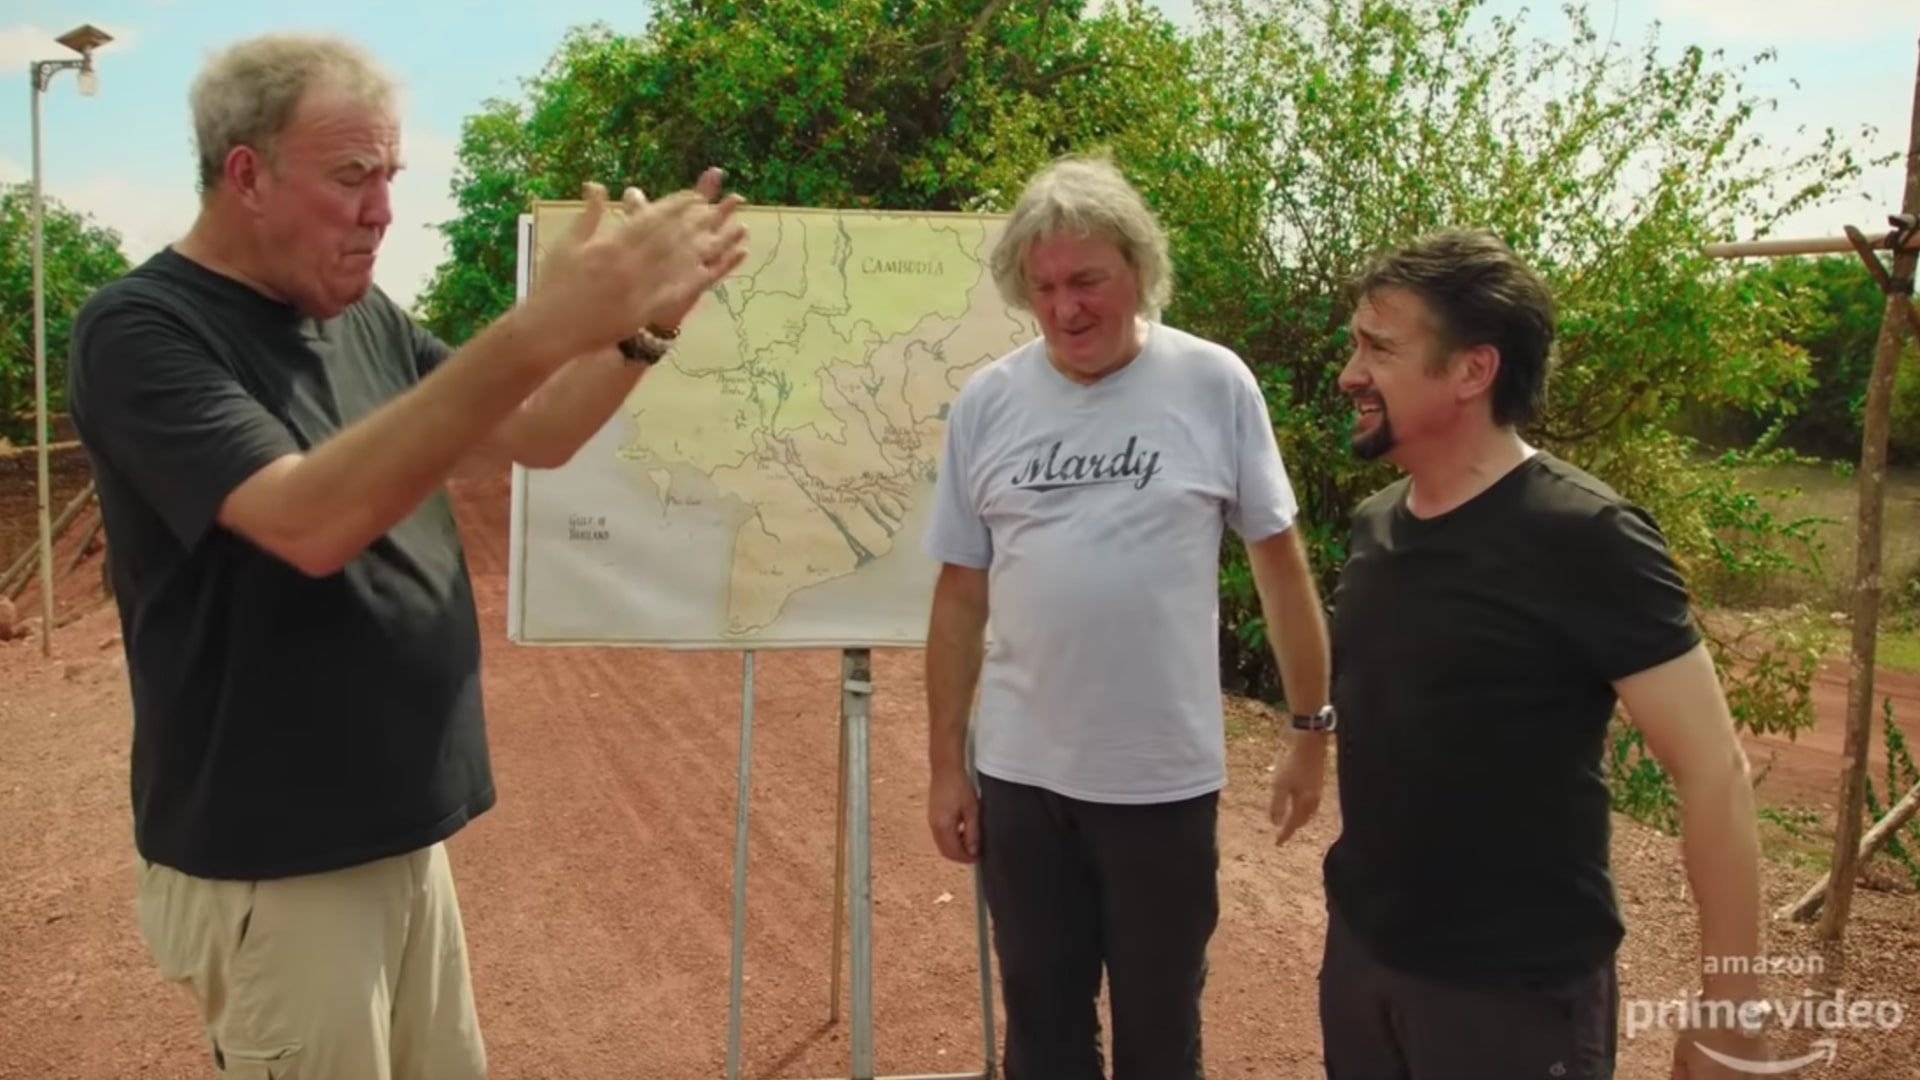 The Grand Tour season four trailer